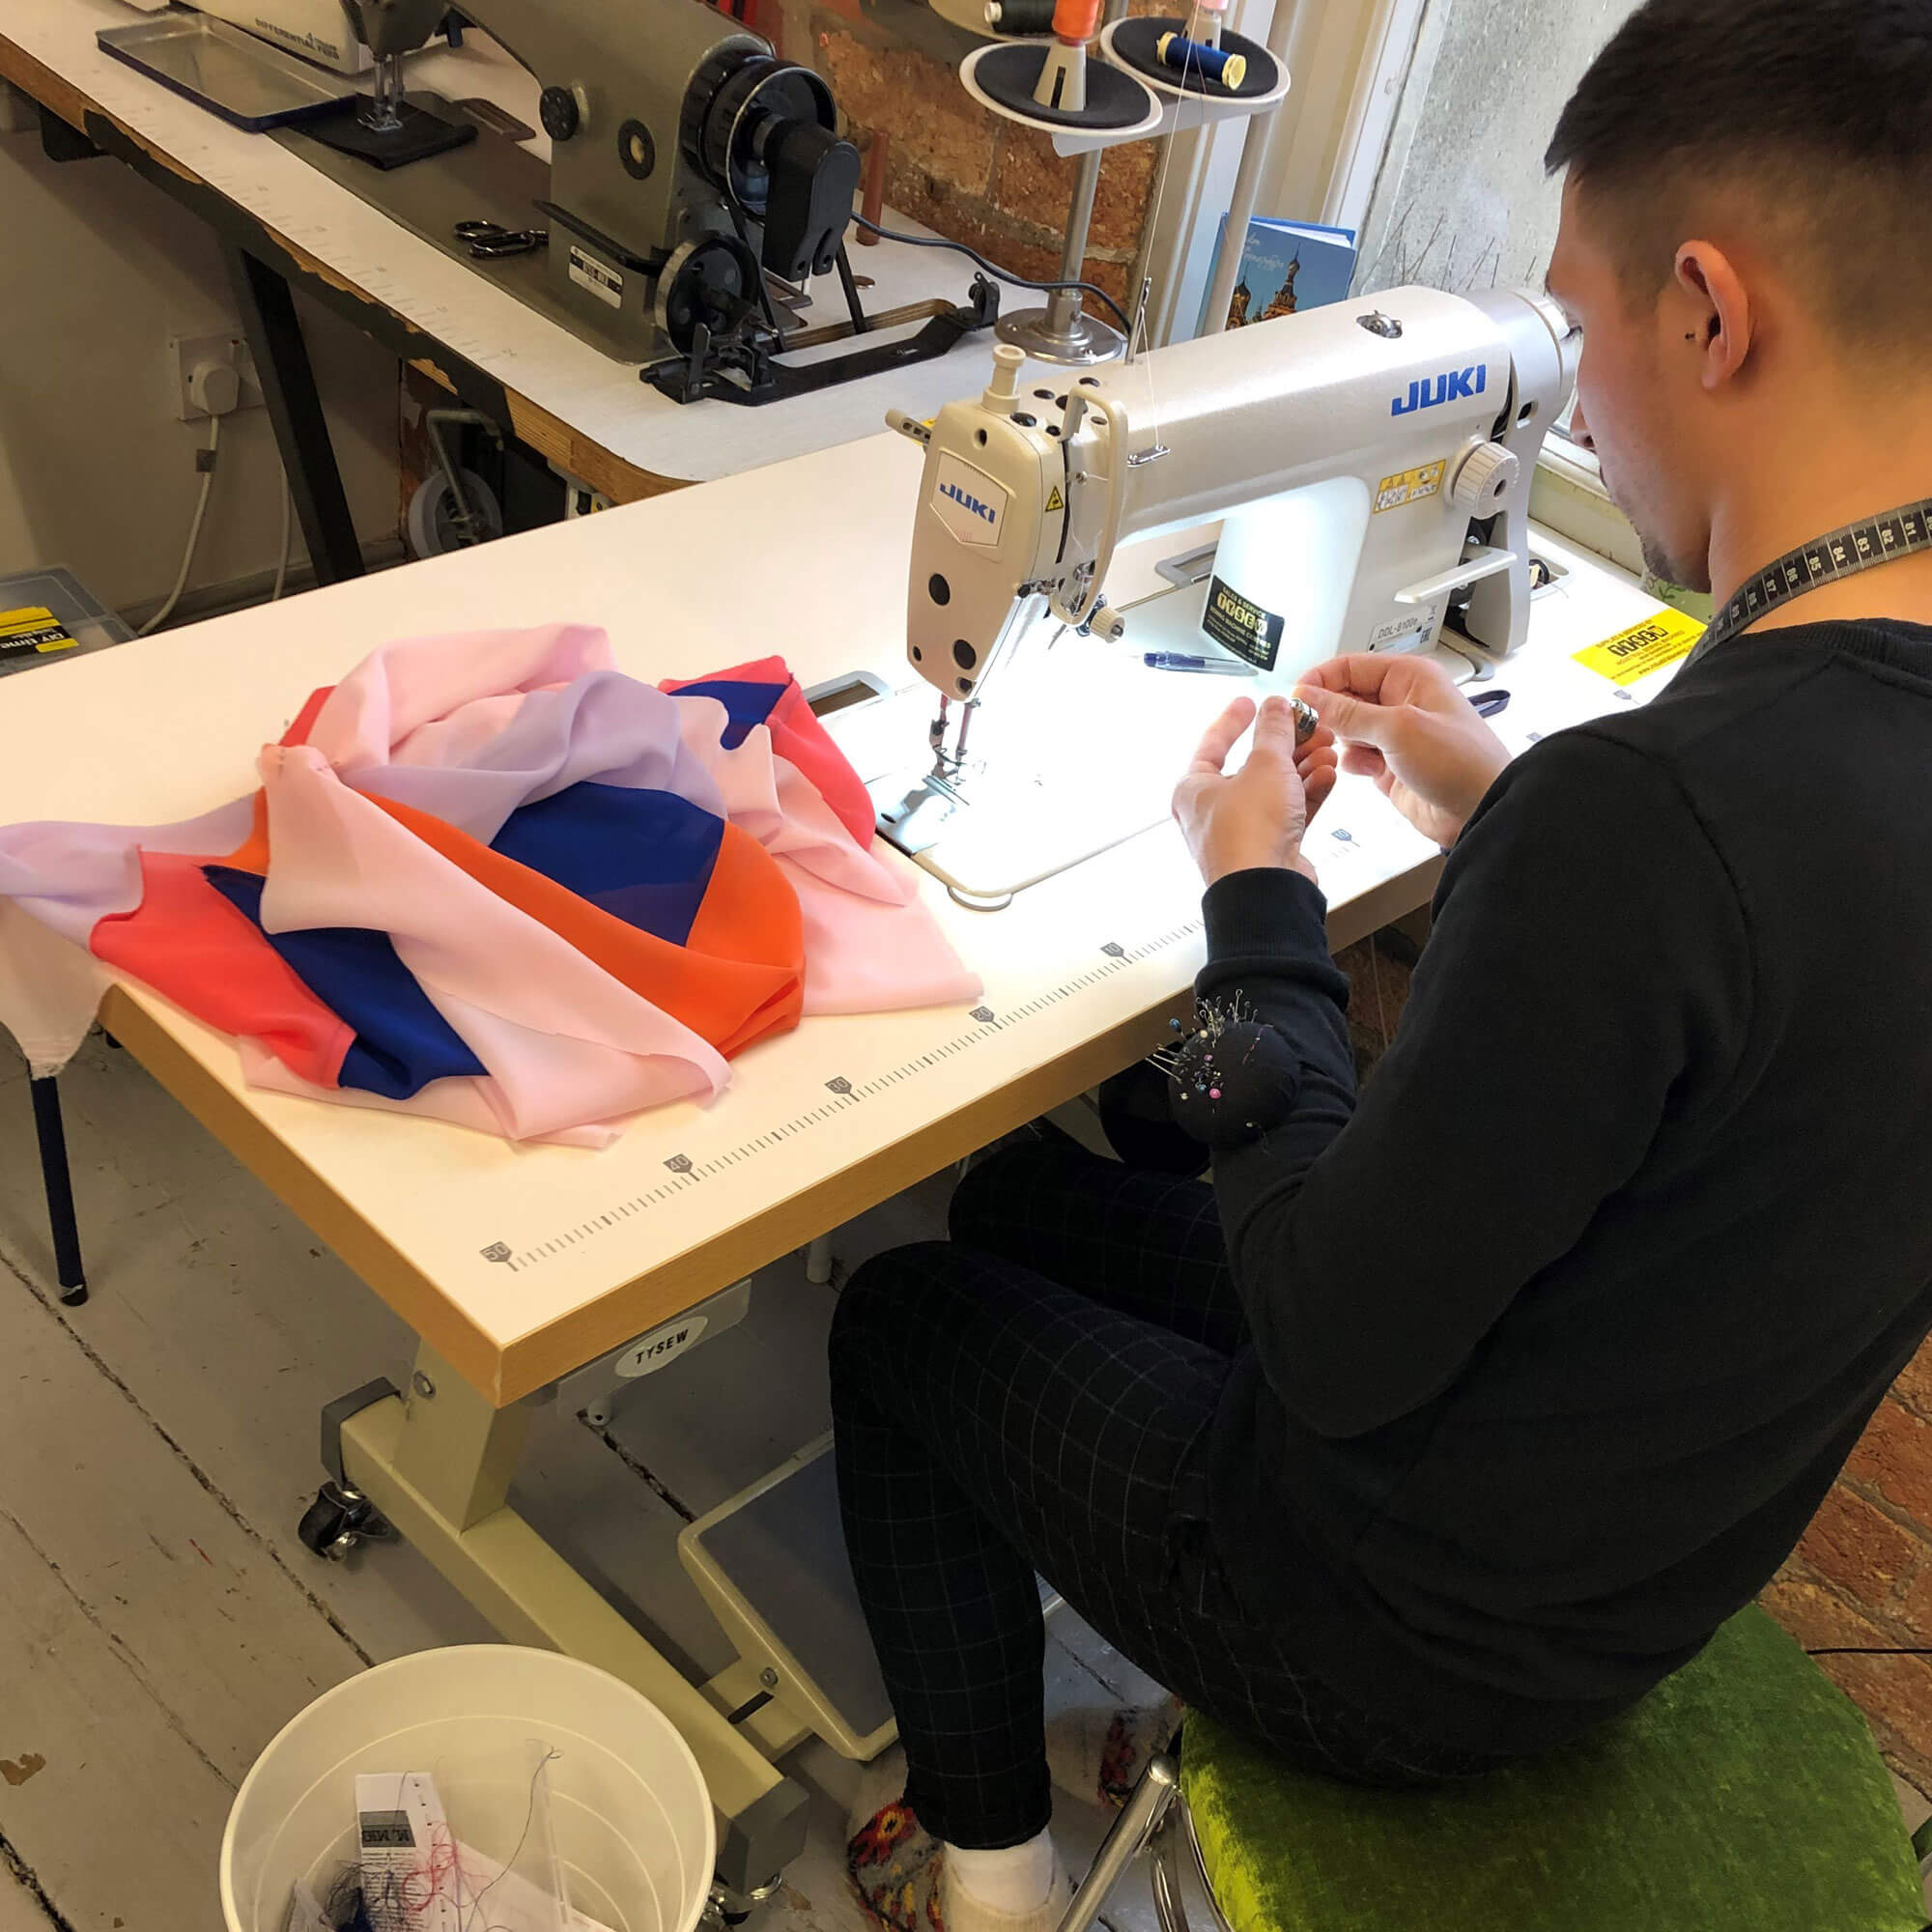 A man in a dark jumper sat with his back to the camera on his sewing machine